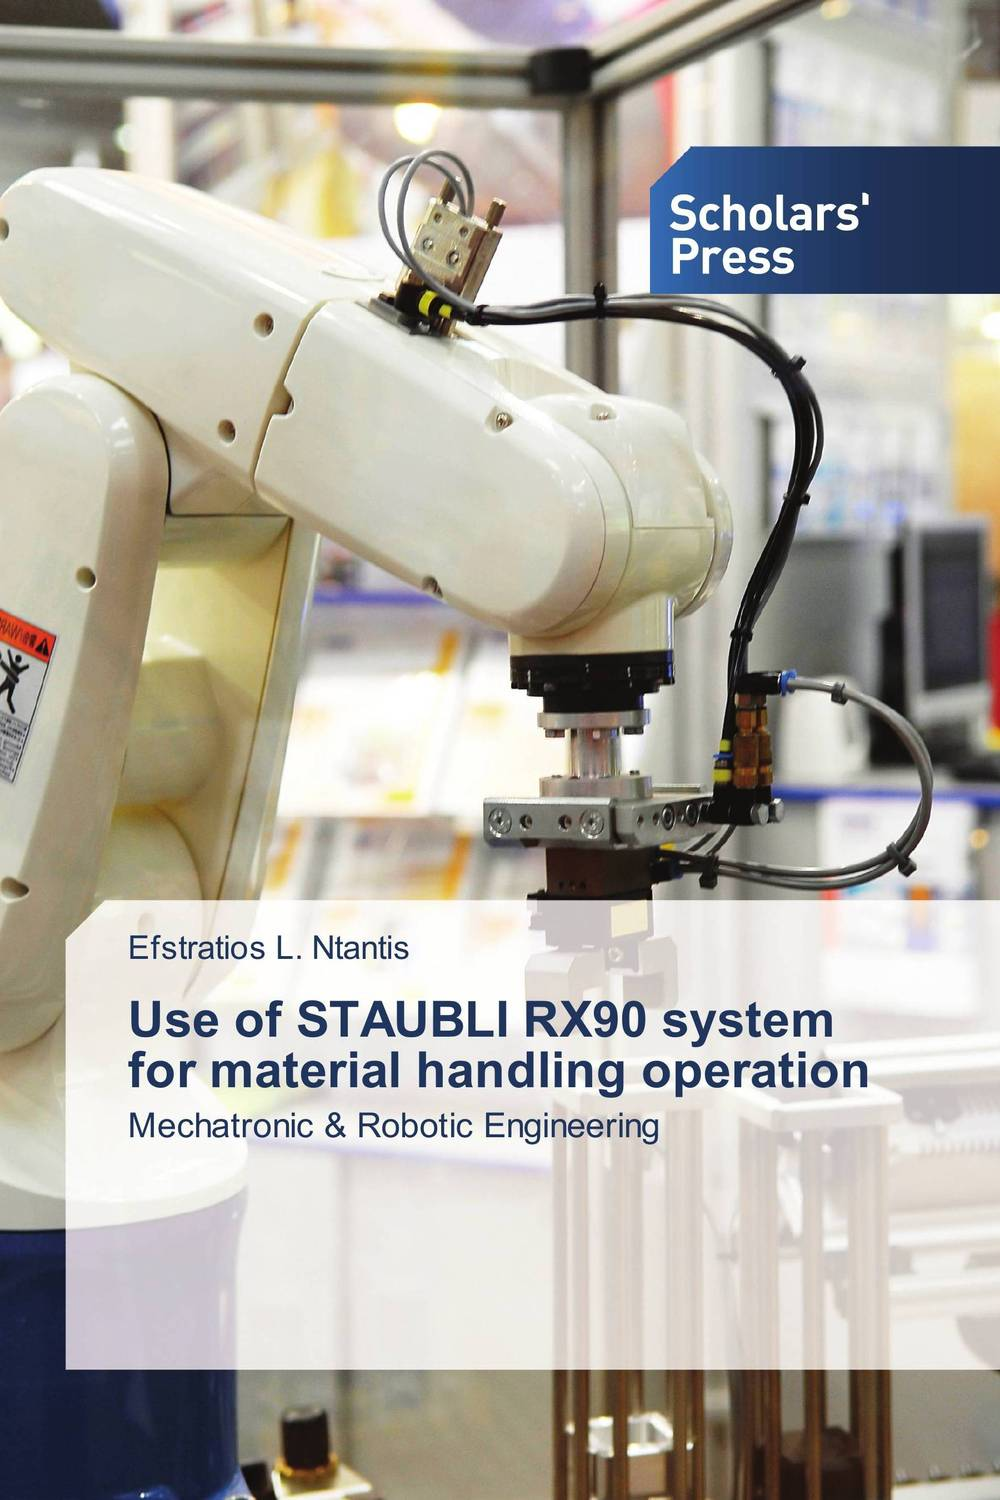 Use of STAUBLI RX90 system for material handling operation